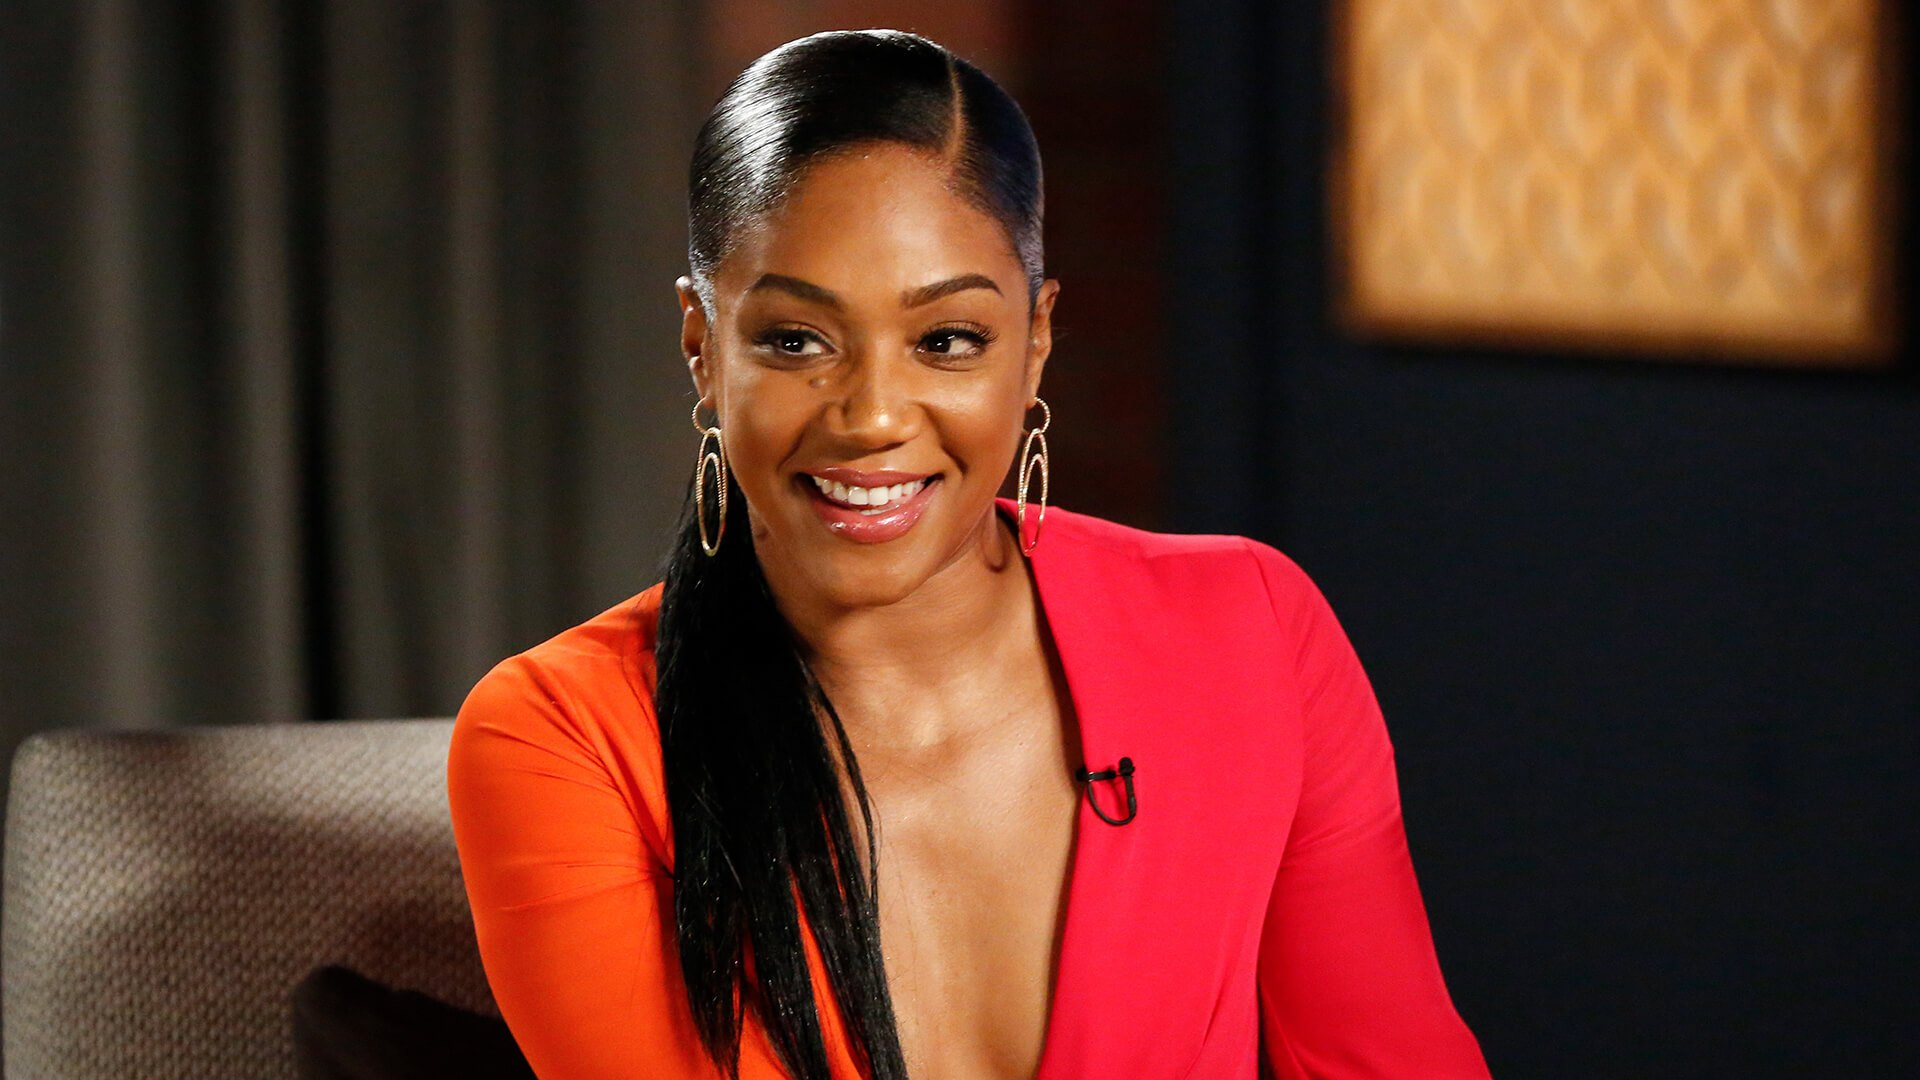 Tiffany Haddish Stars in New Movie 'Like a Boss'